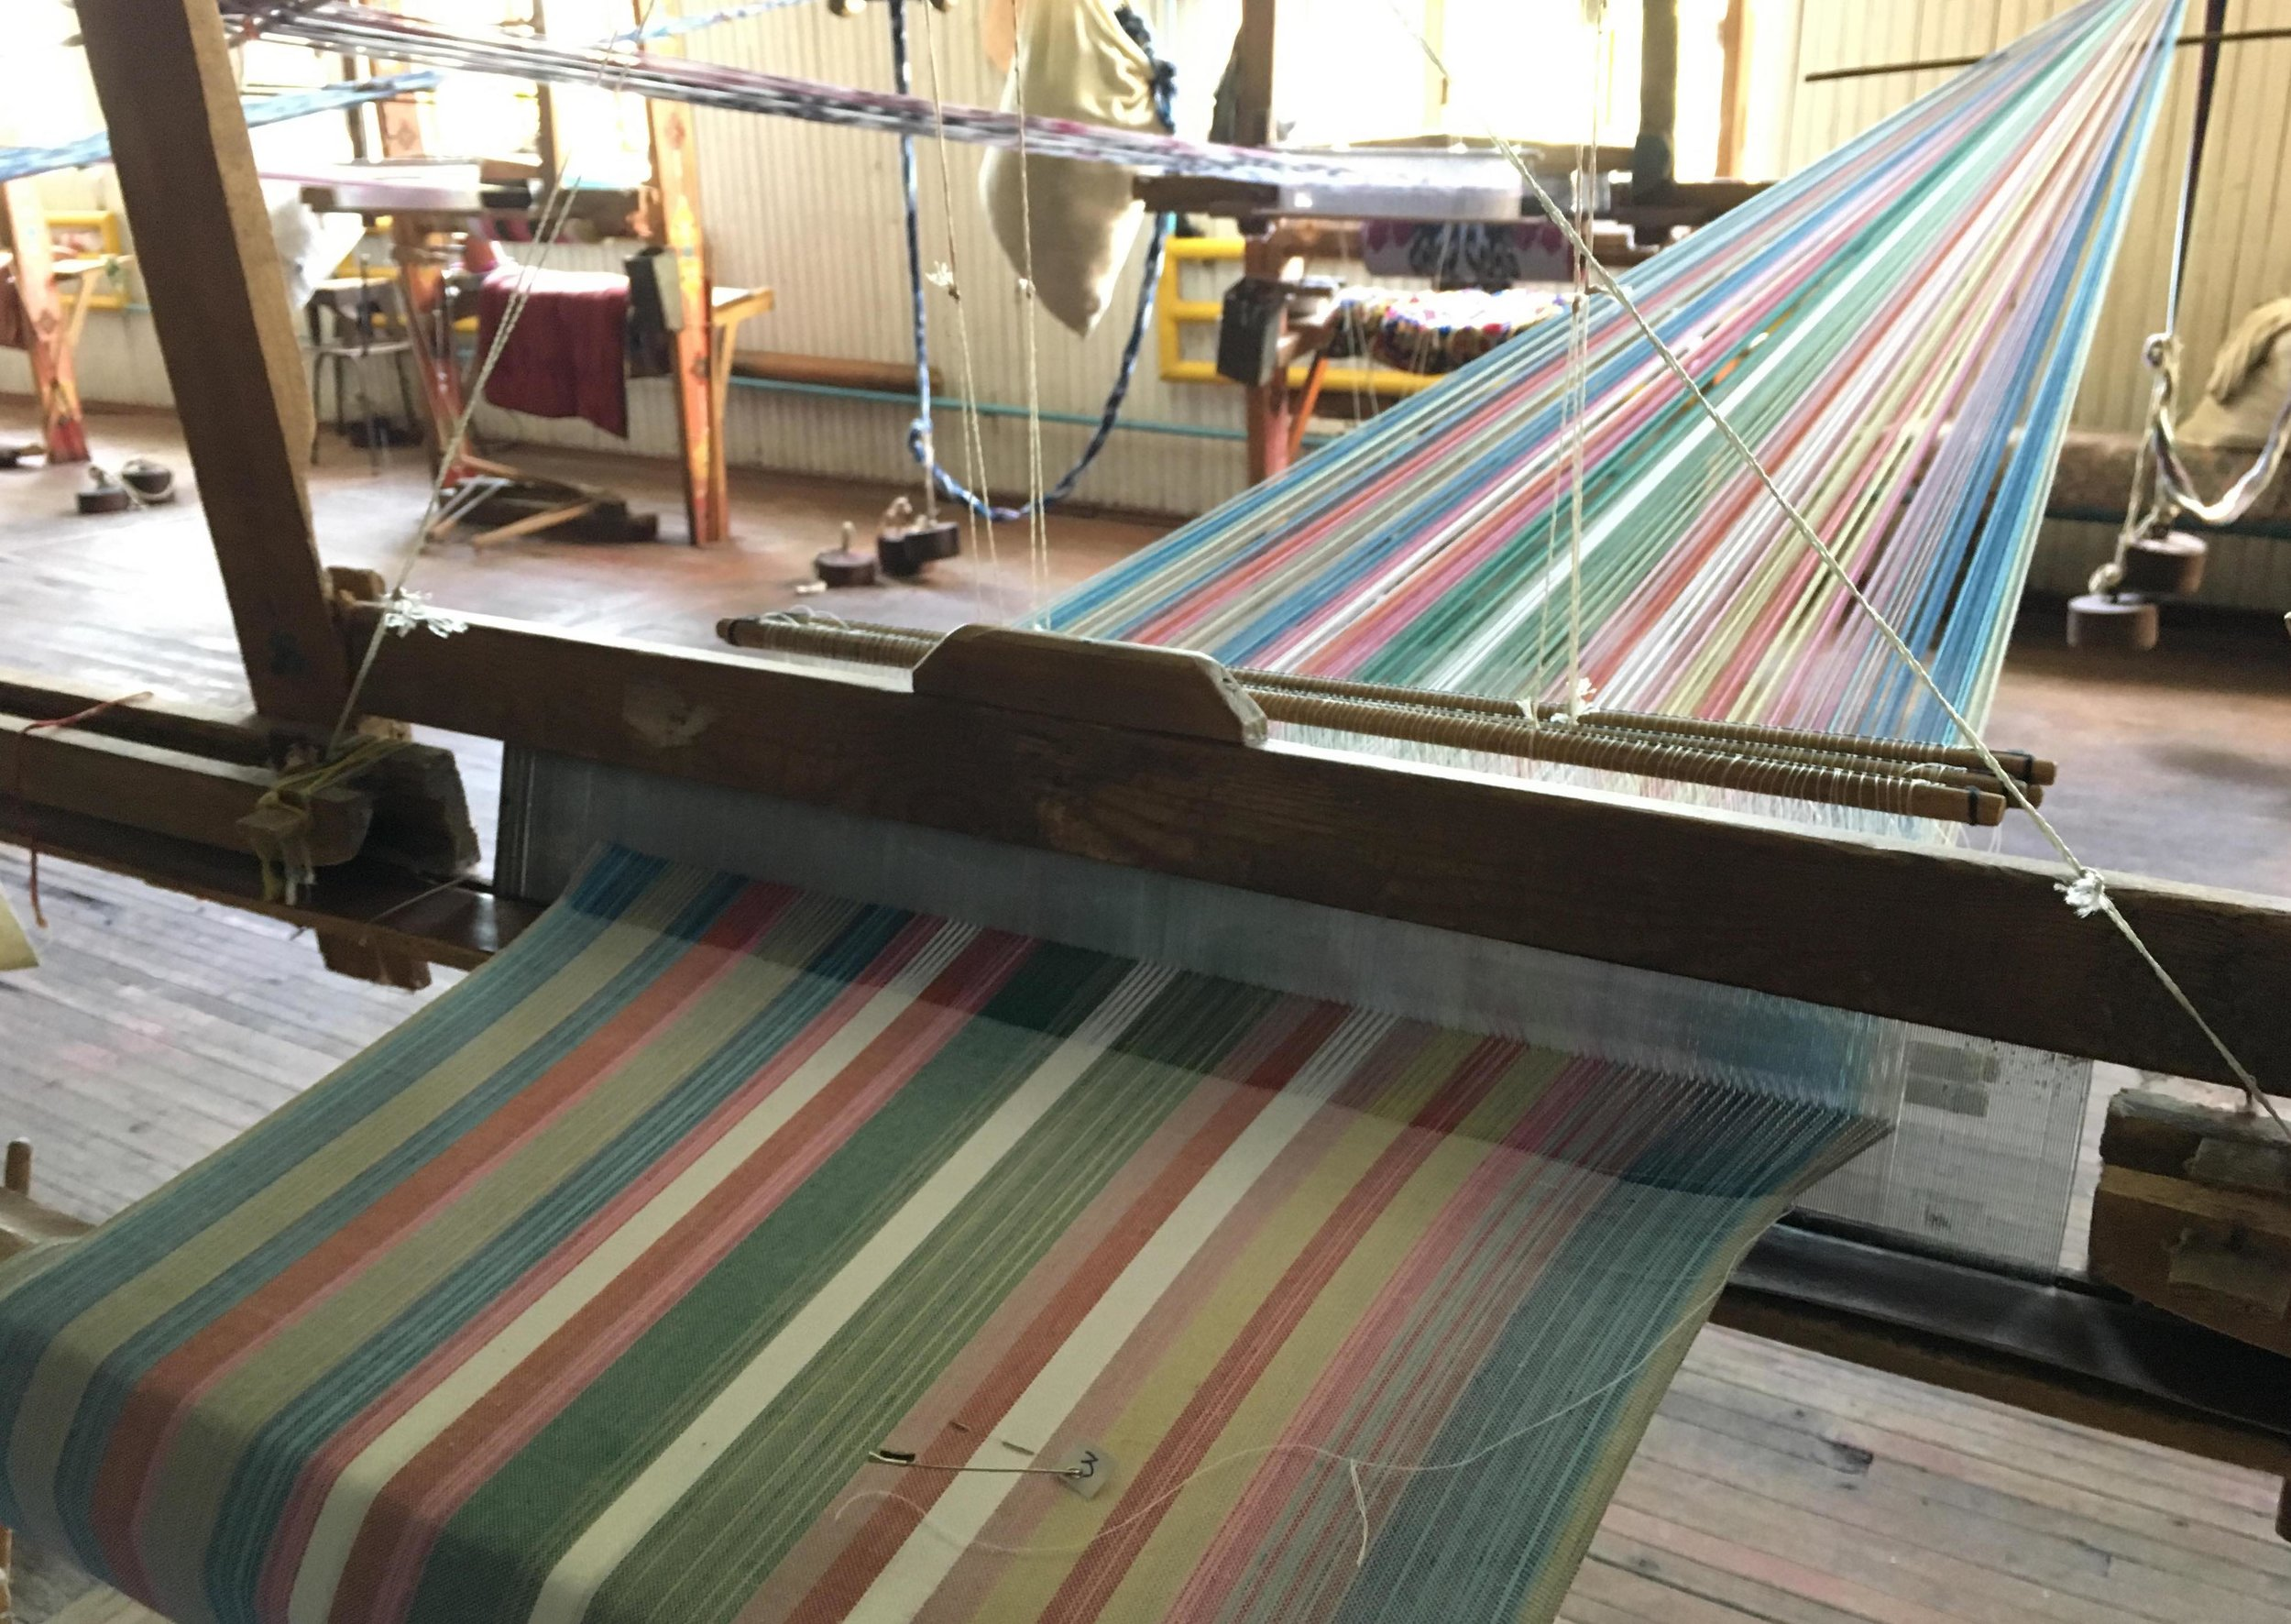 Work in progress at a weaving loom with silk and cotton